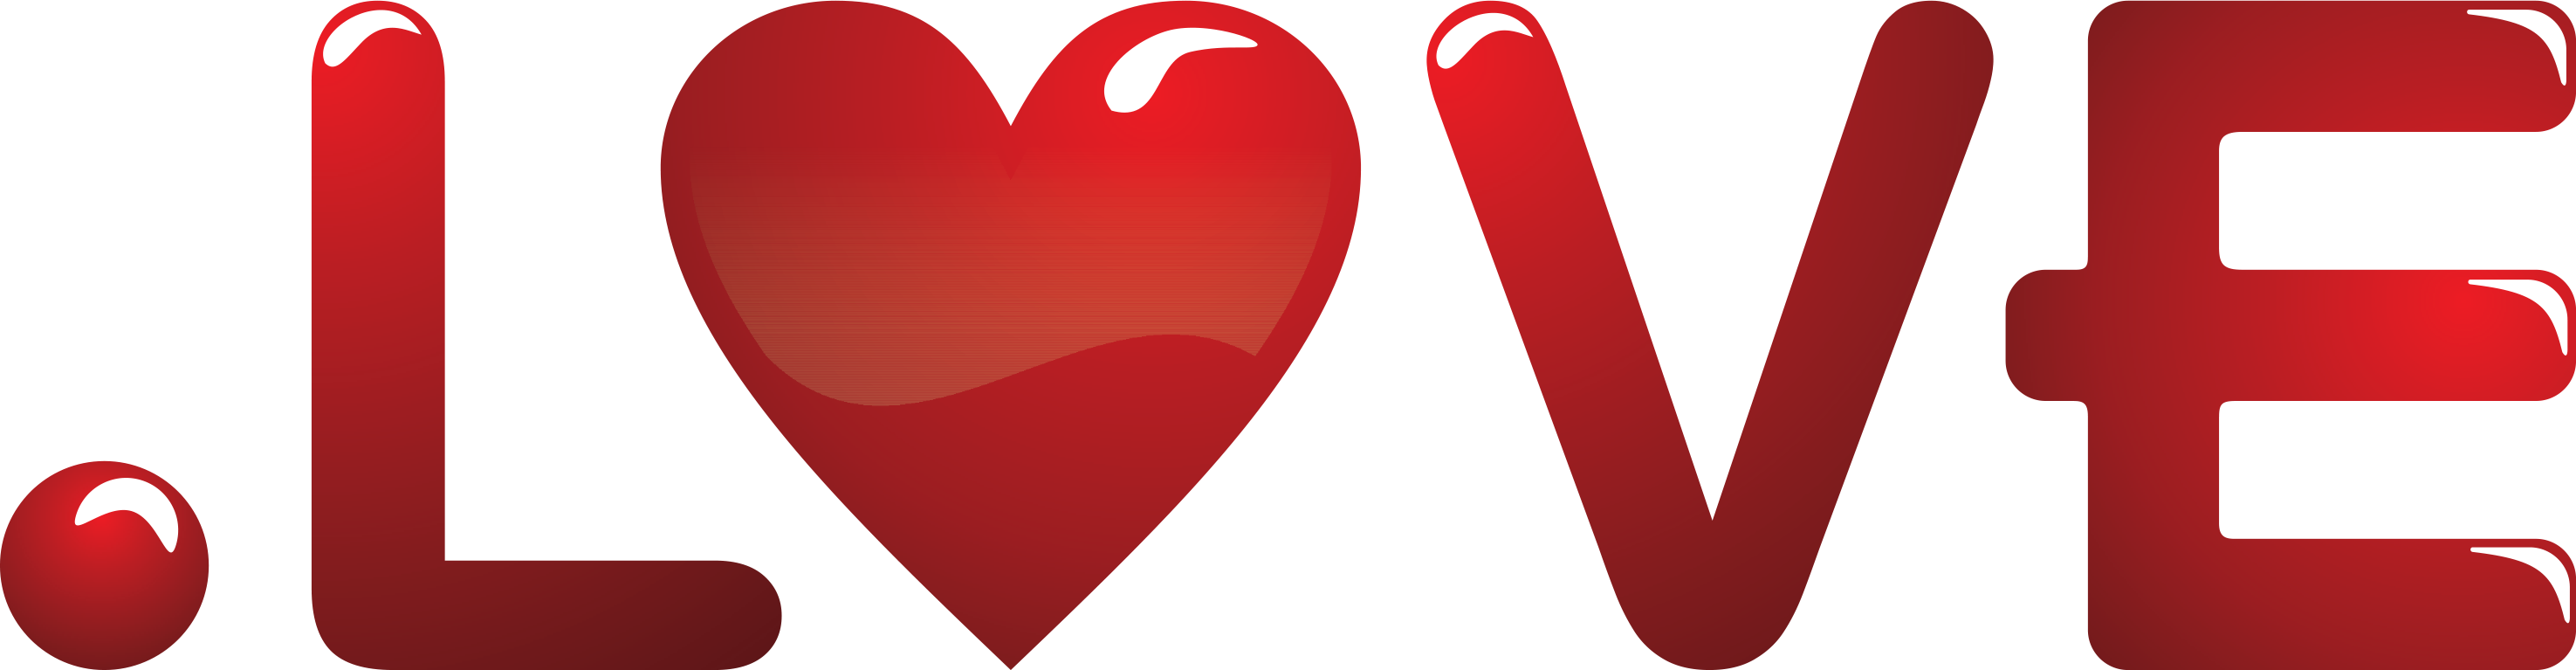 LOVE Domain Names – All You Need is  LOVE